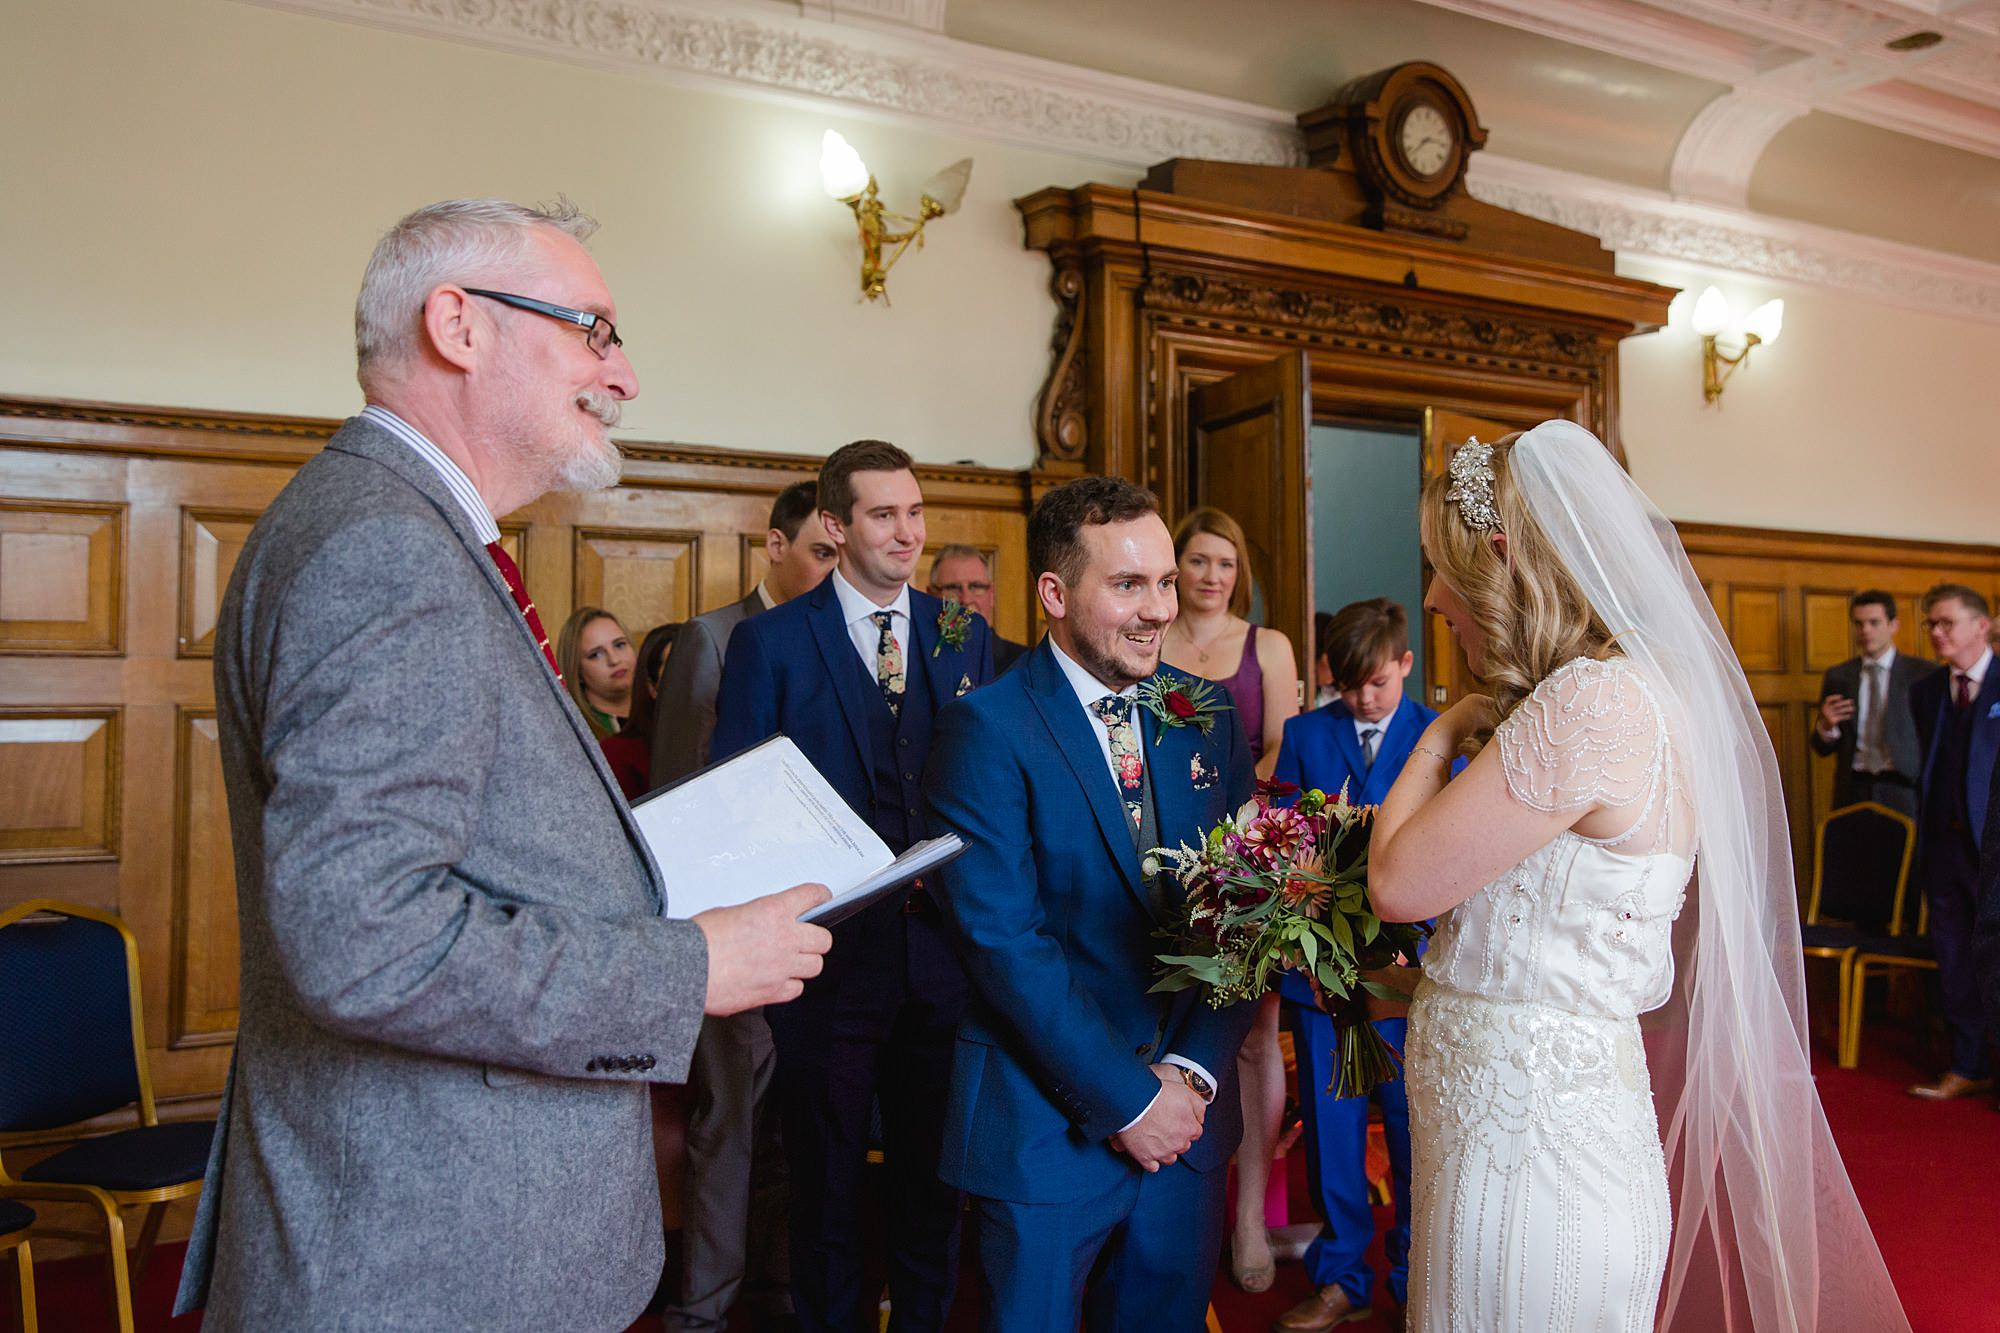 groom greets his bride ahead of ceremony